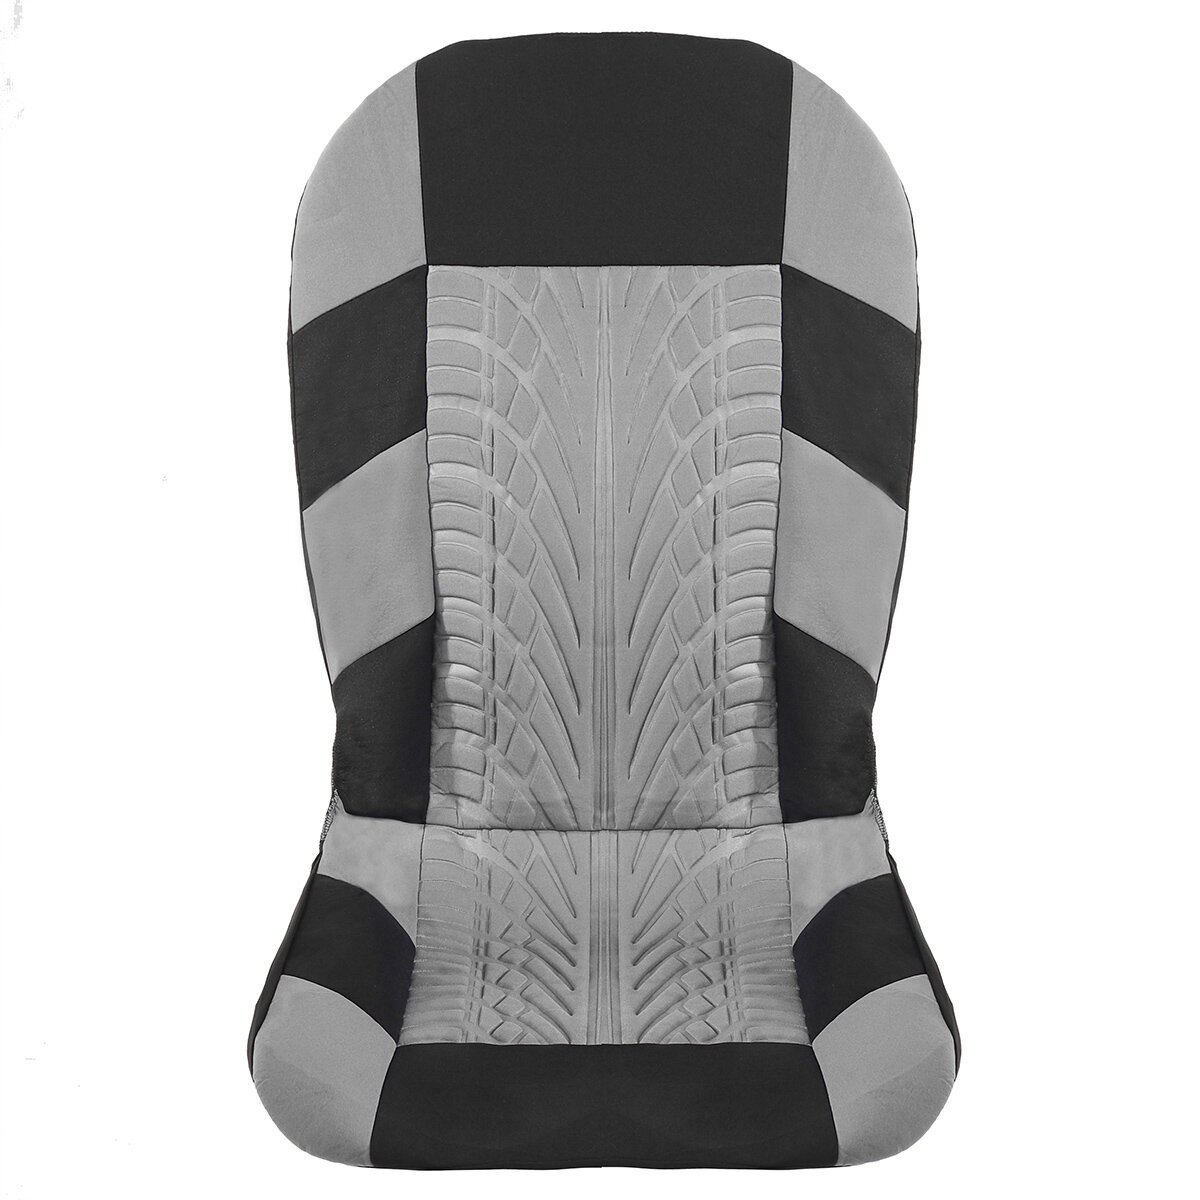 2/4/Seat Cover Front Back Row 5-Seats for Car SUV Truck Van 3Colors, Banggood  - buy with discount